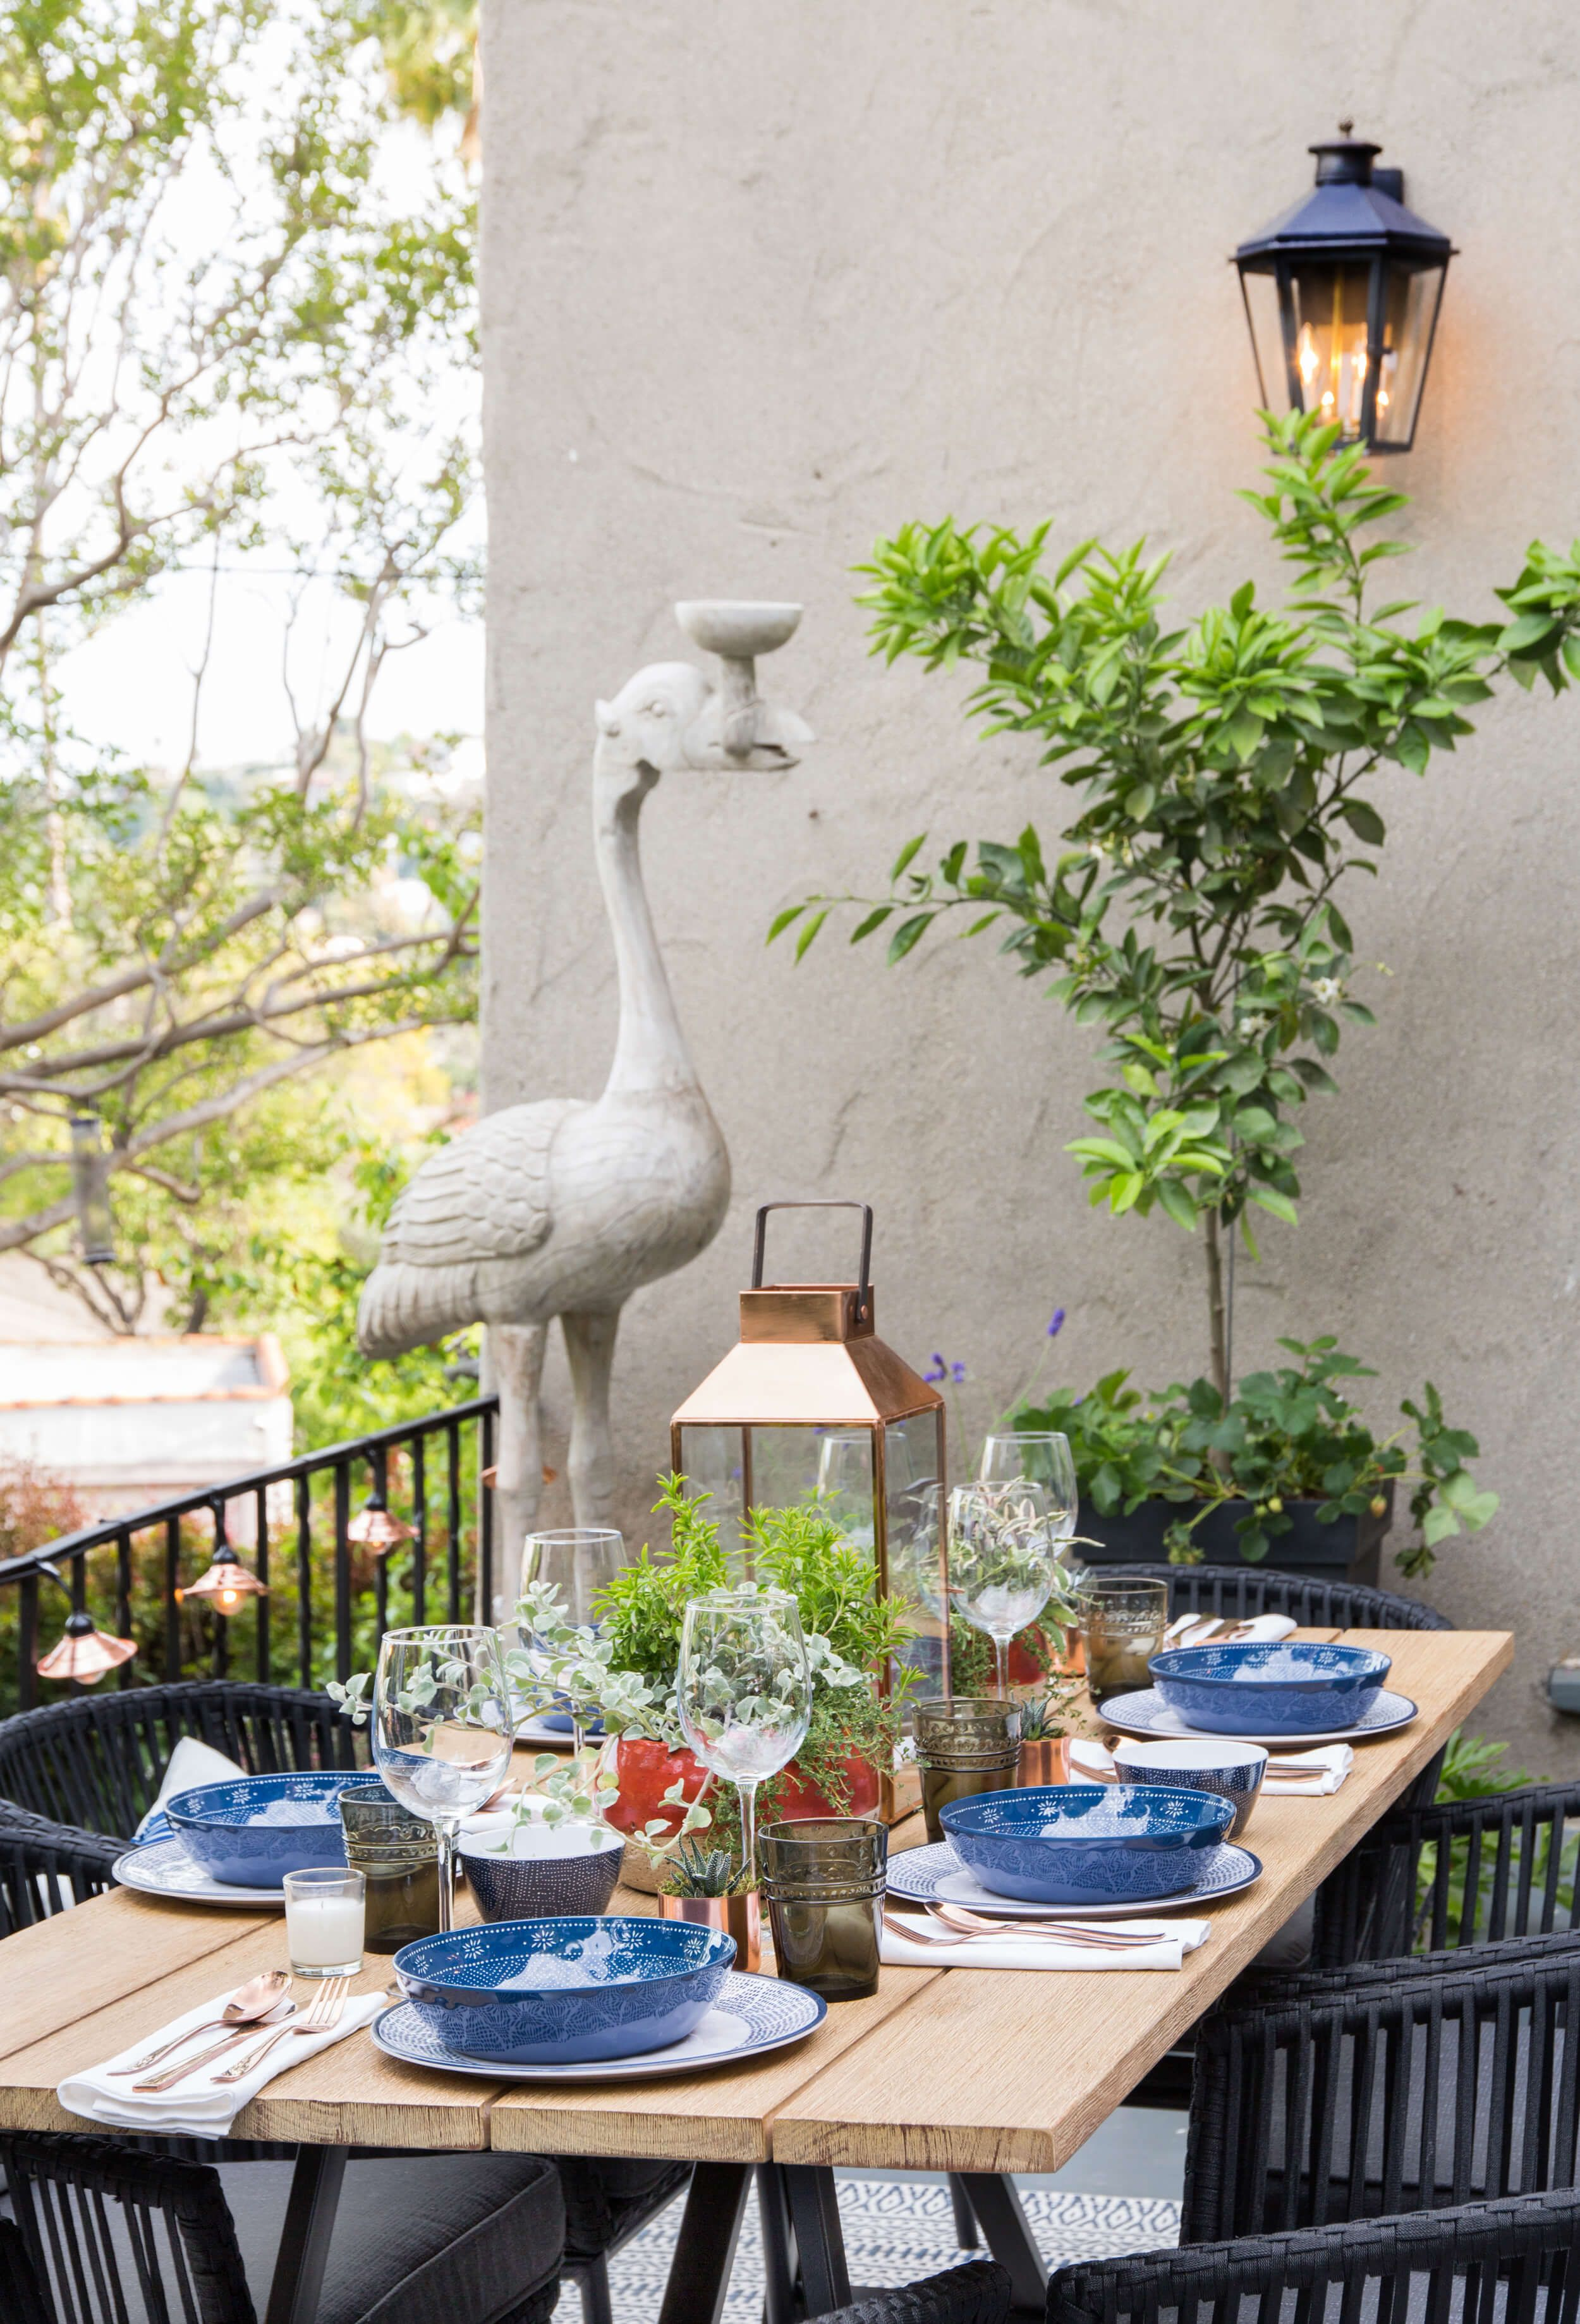 Mix and match with fun outdoor dinnerware for the perfect alfresco